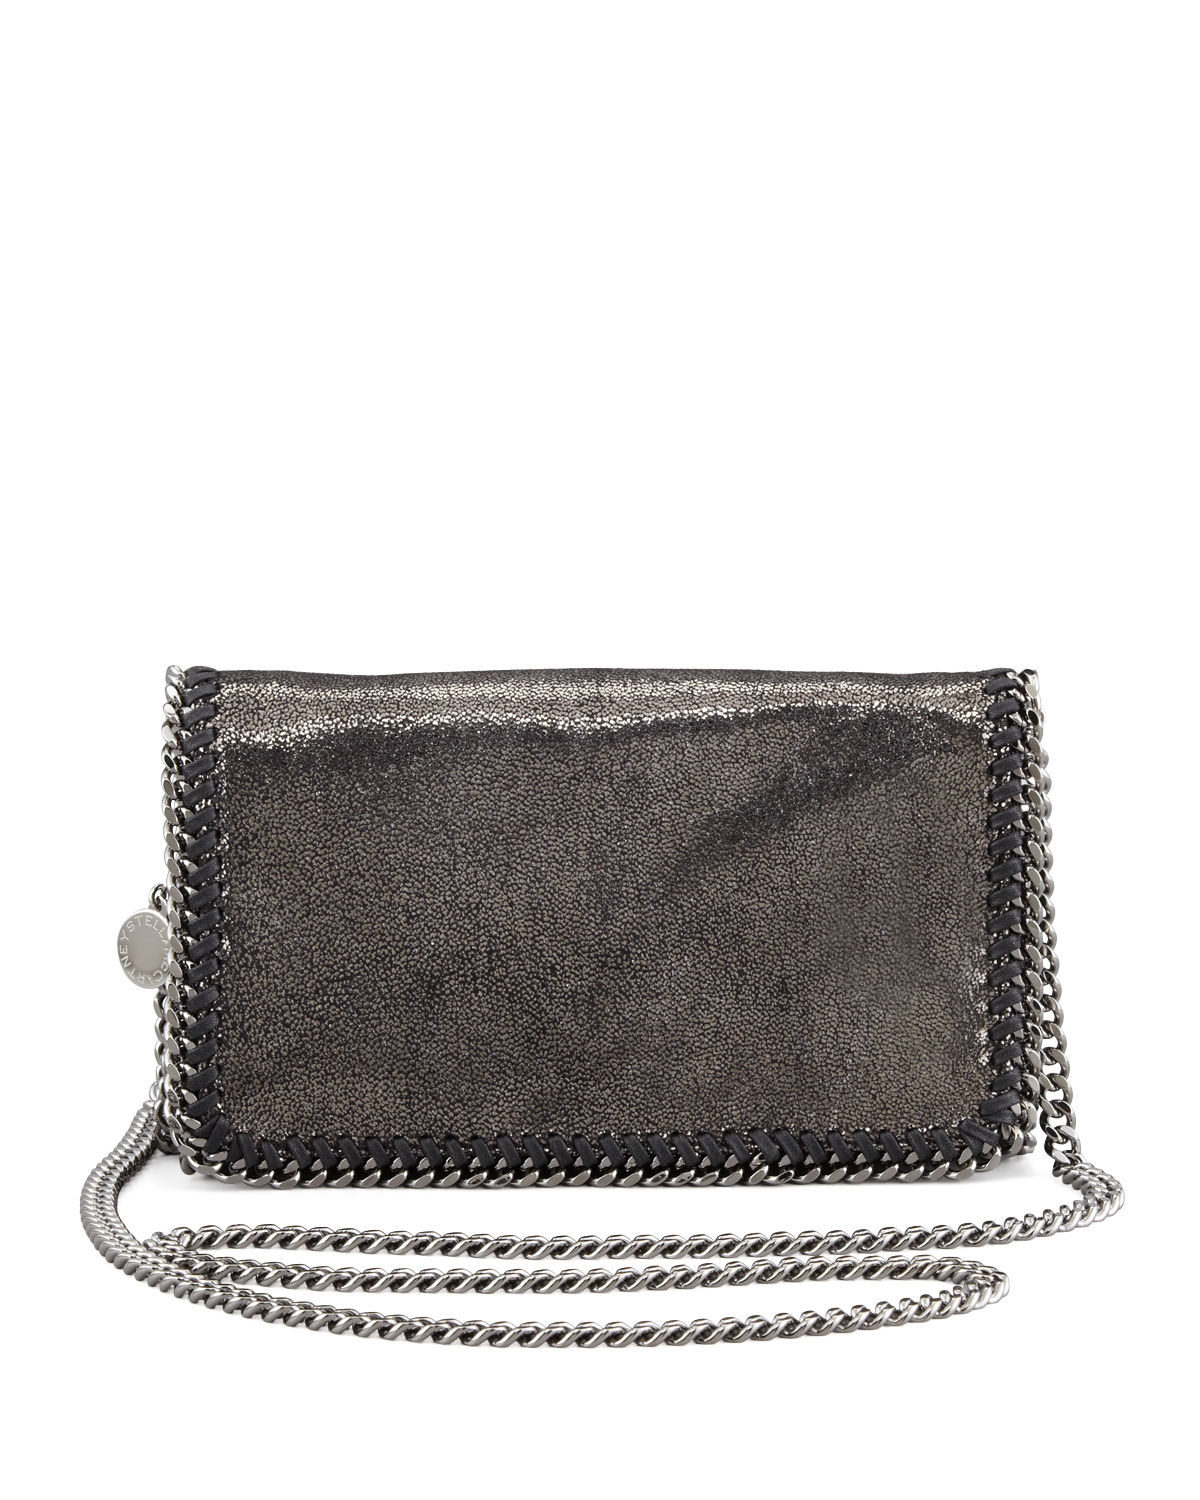 567e6b789850f Stella McCartney Falabella Crossbody Bag